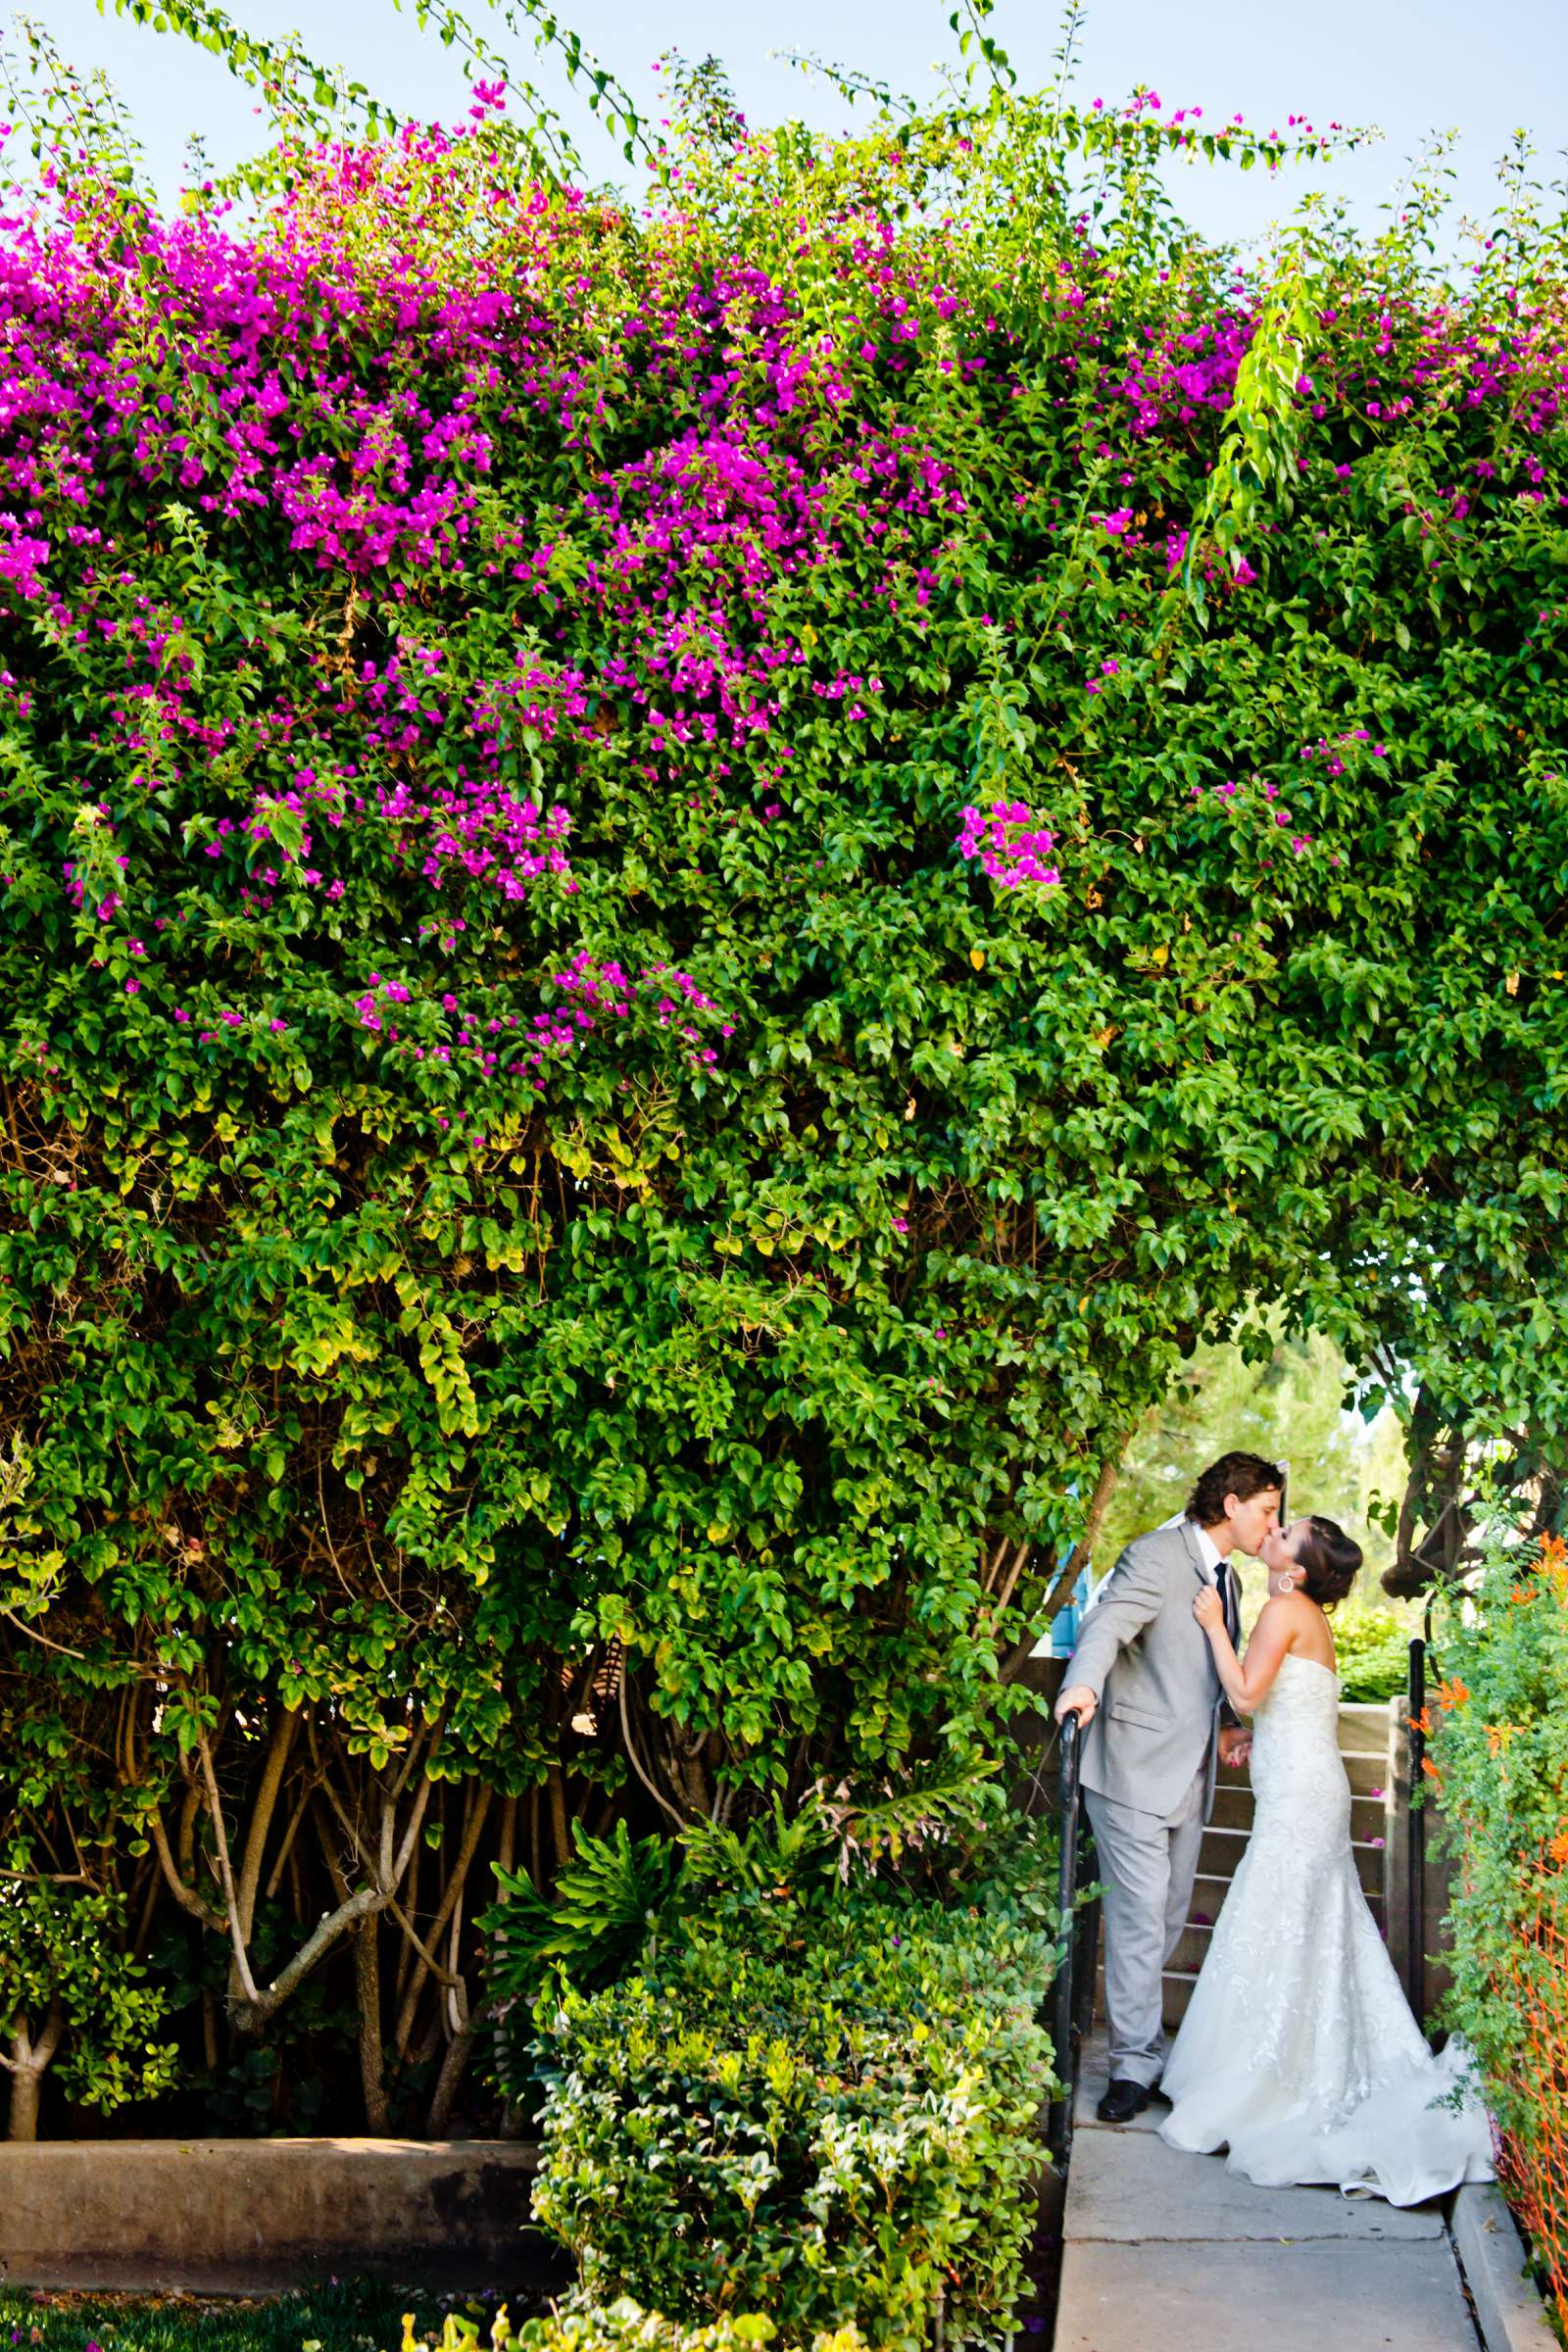 Marina Village Conference Center Wedding, Aleicia and Jonathan Wedding Photo #339357 by True Photography